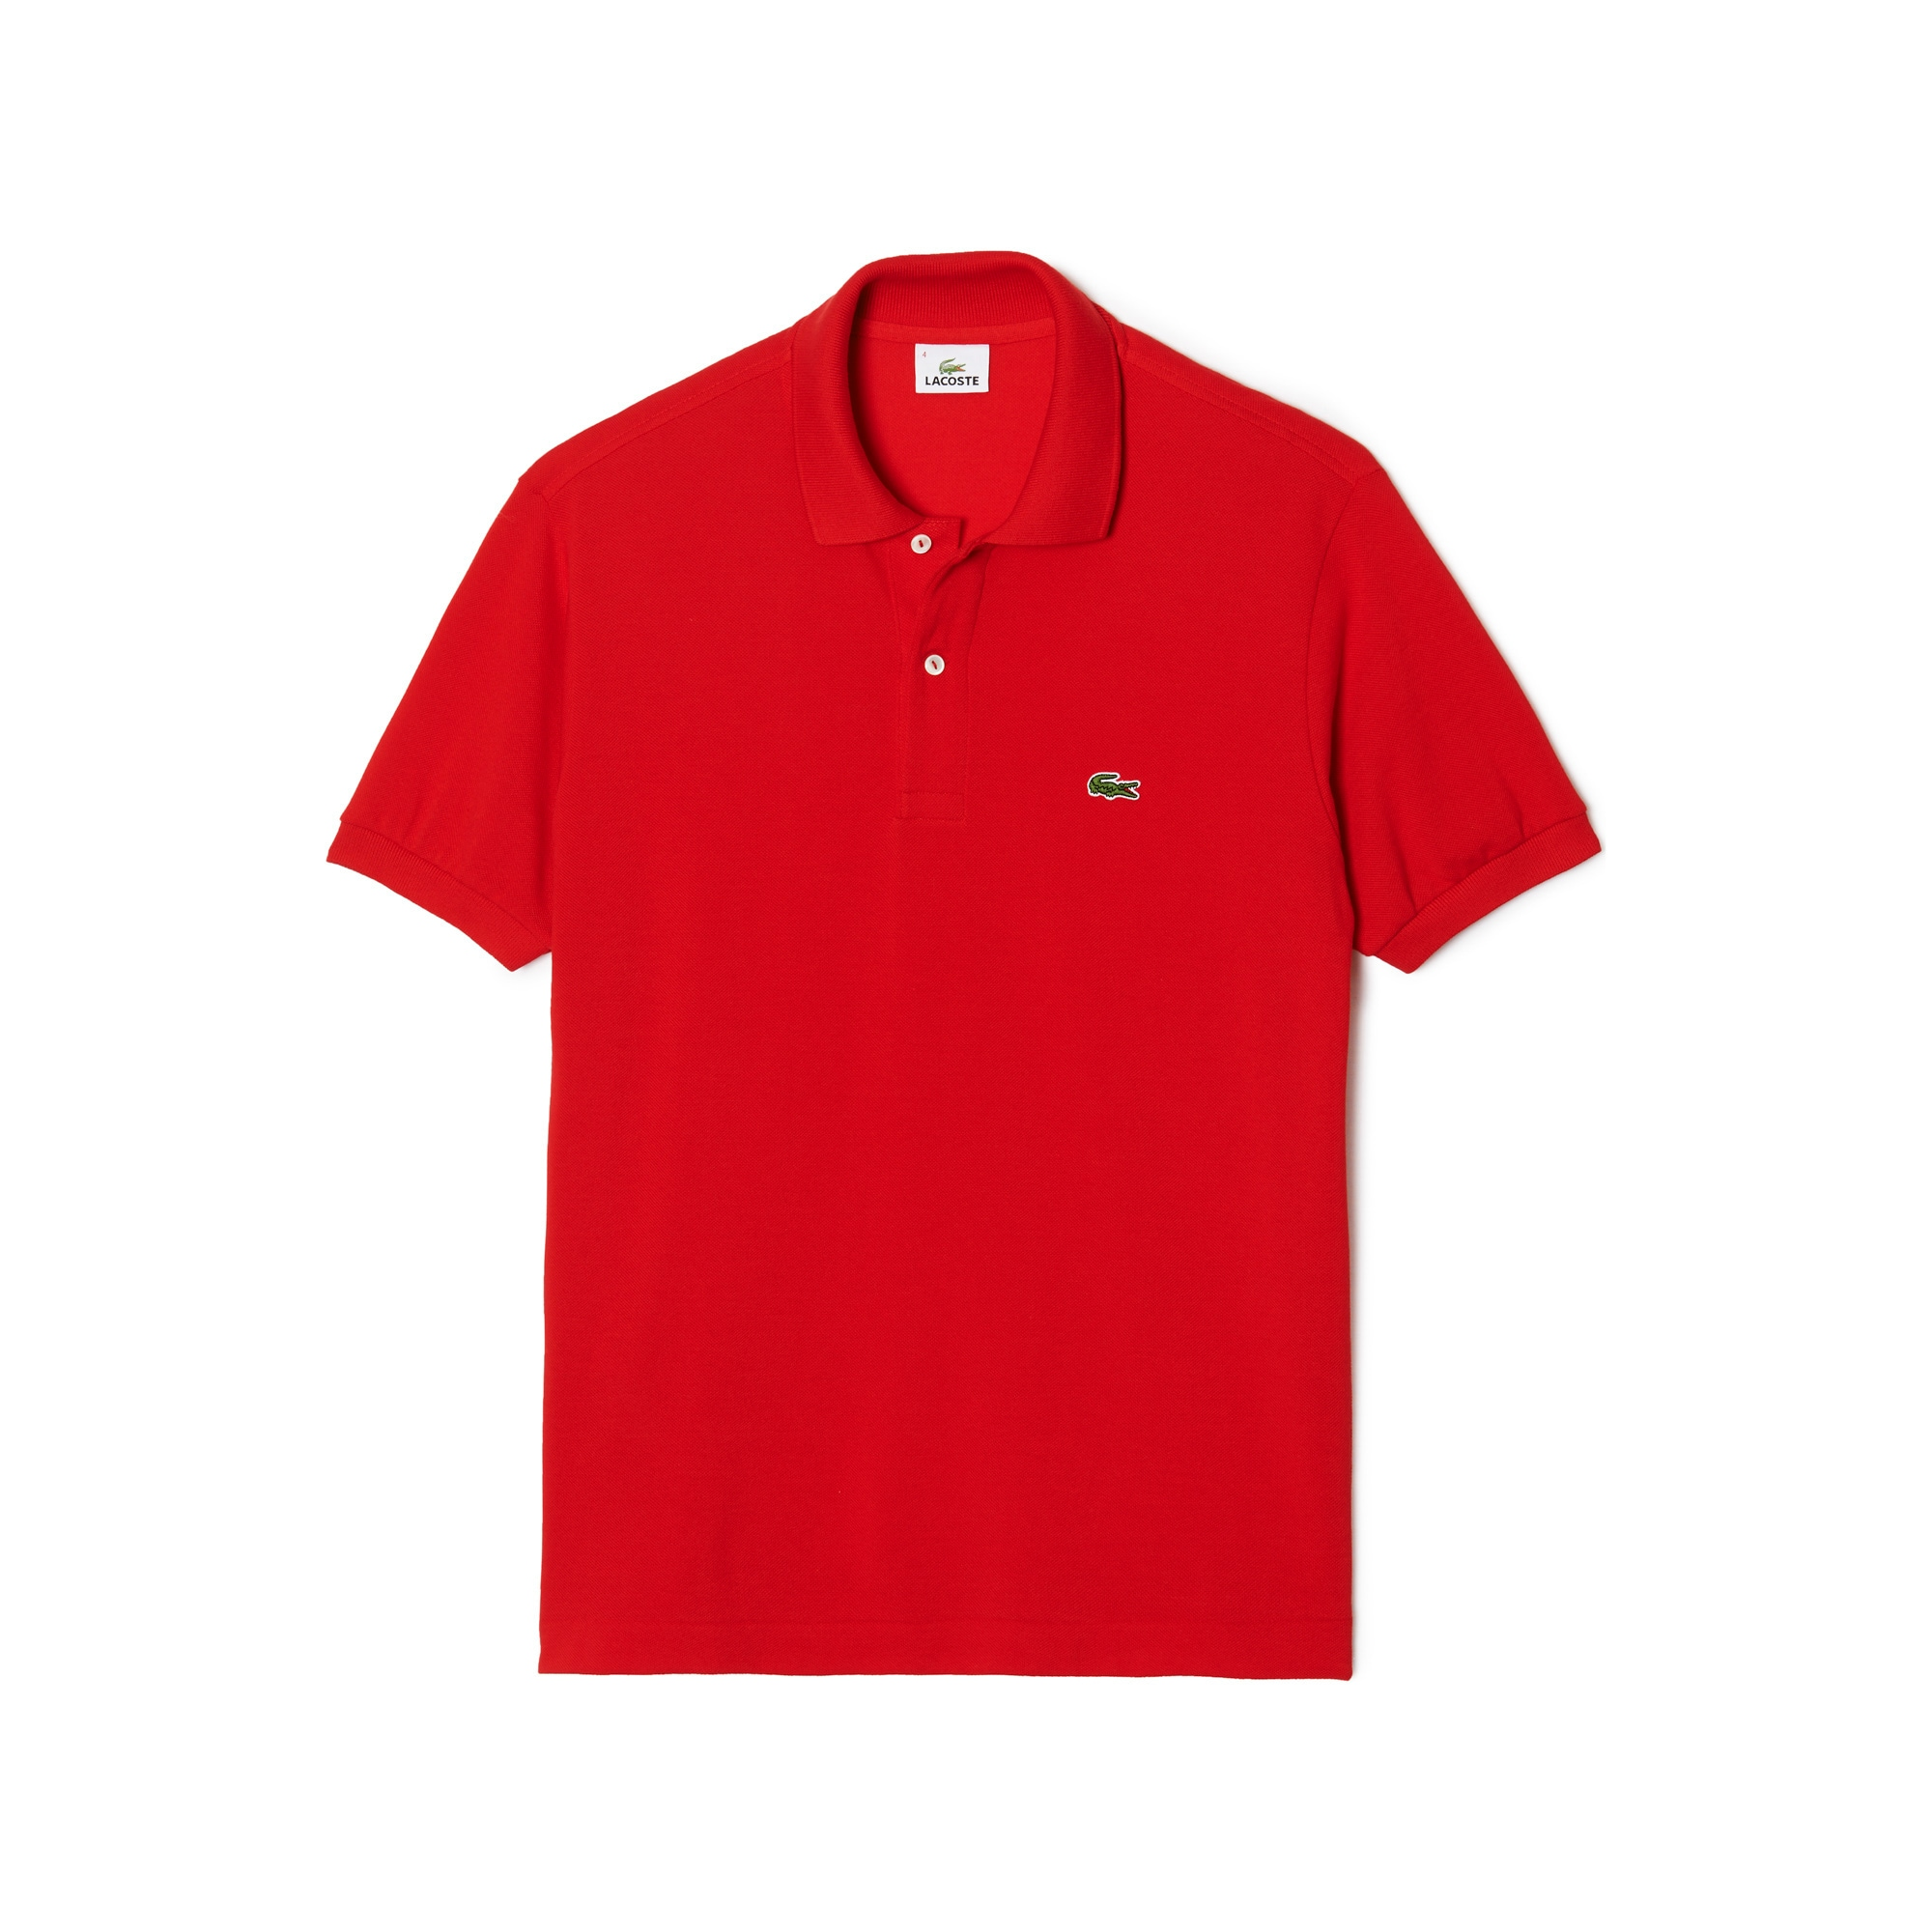 Tall Fit Herren-Lacoste-Polo